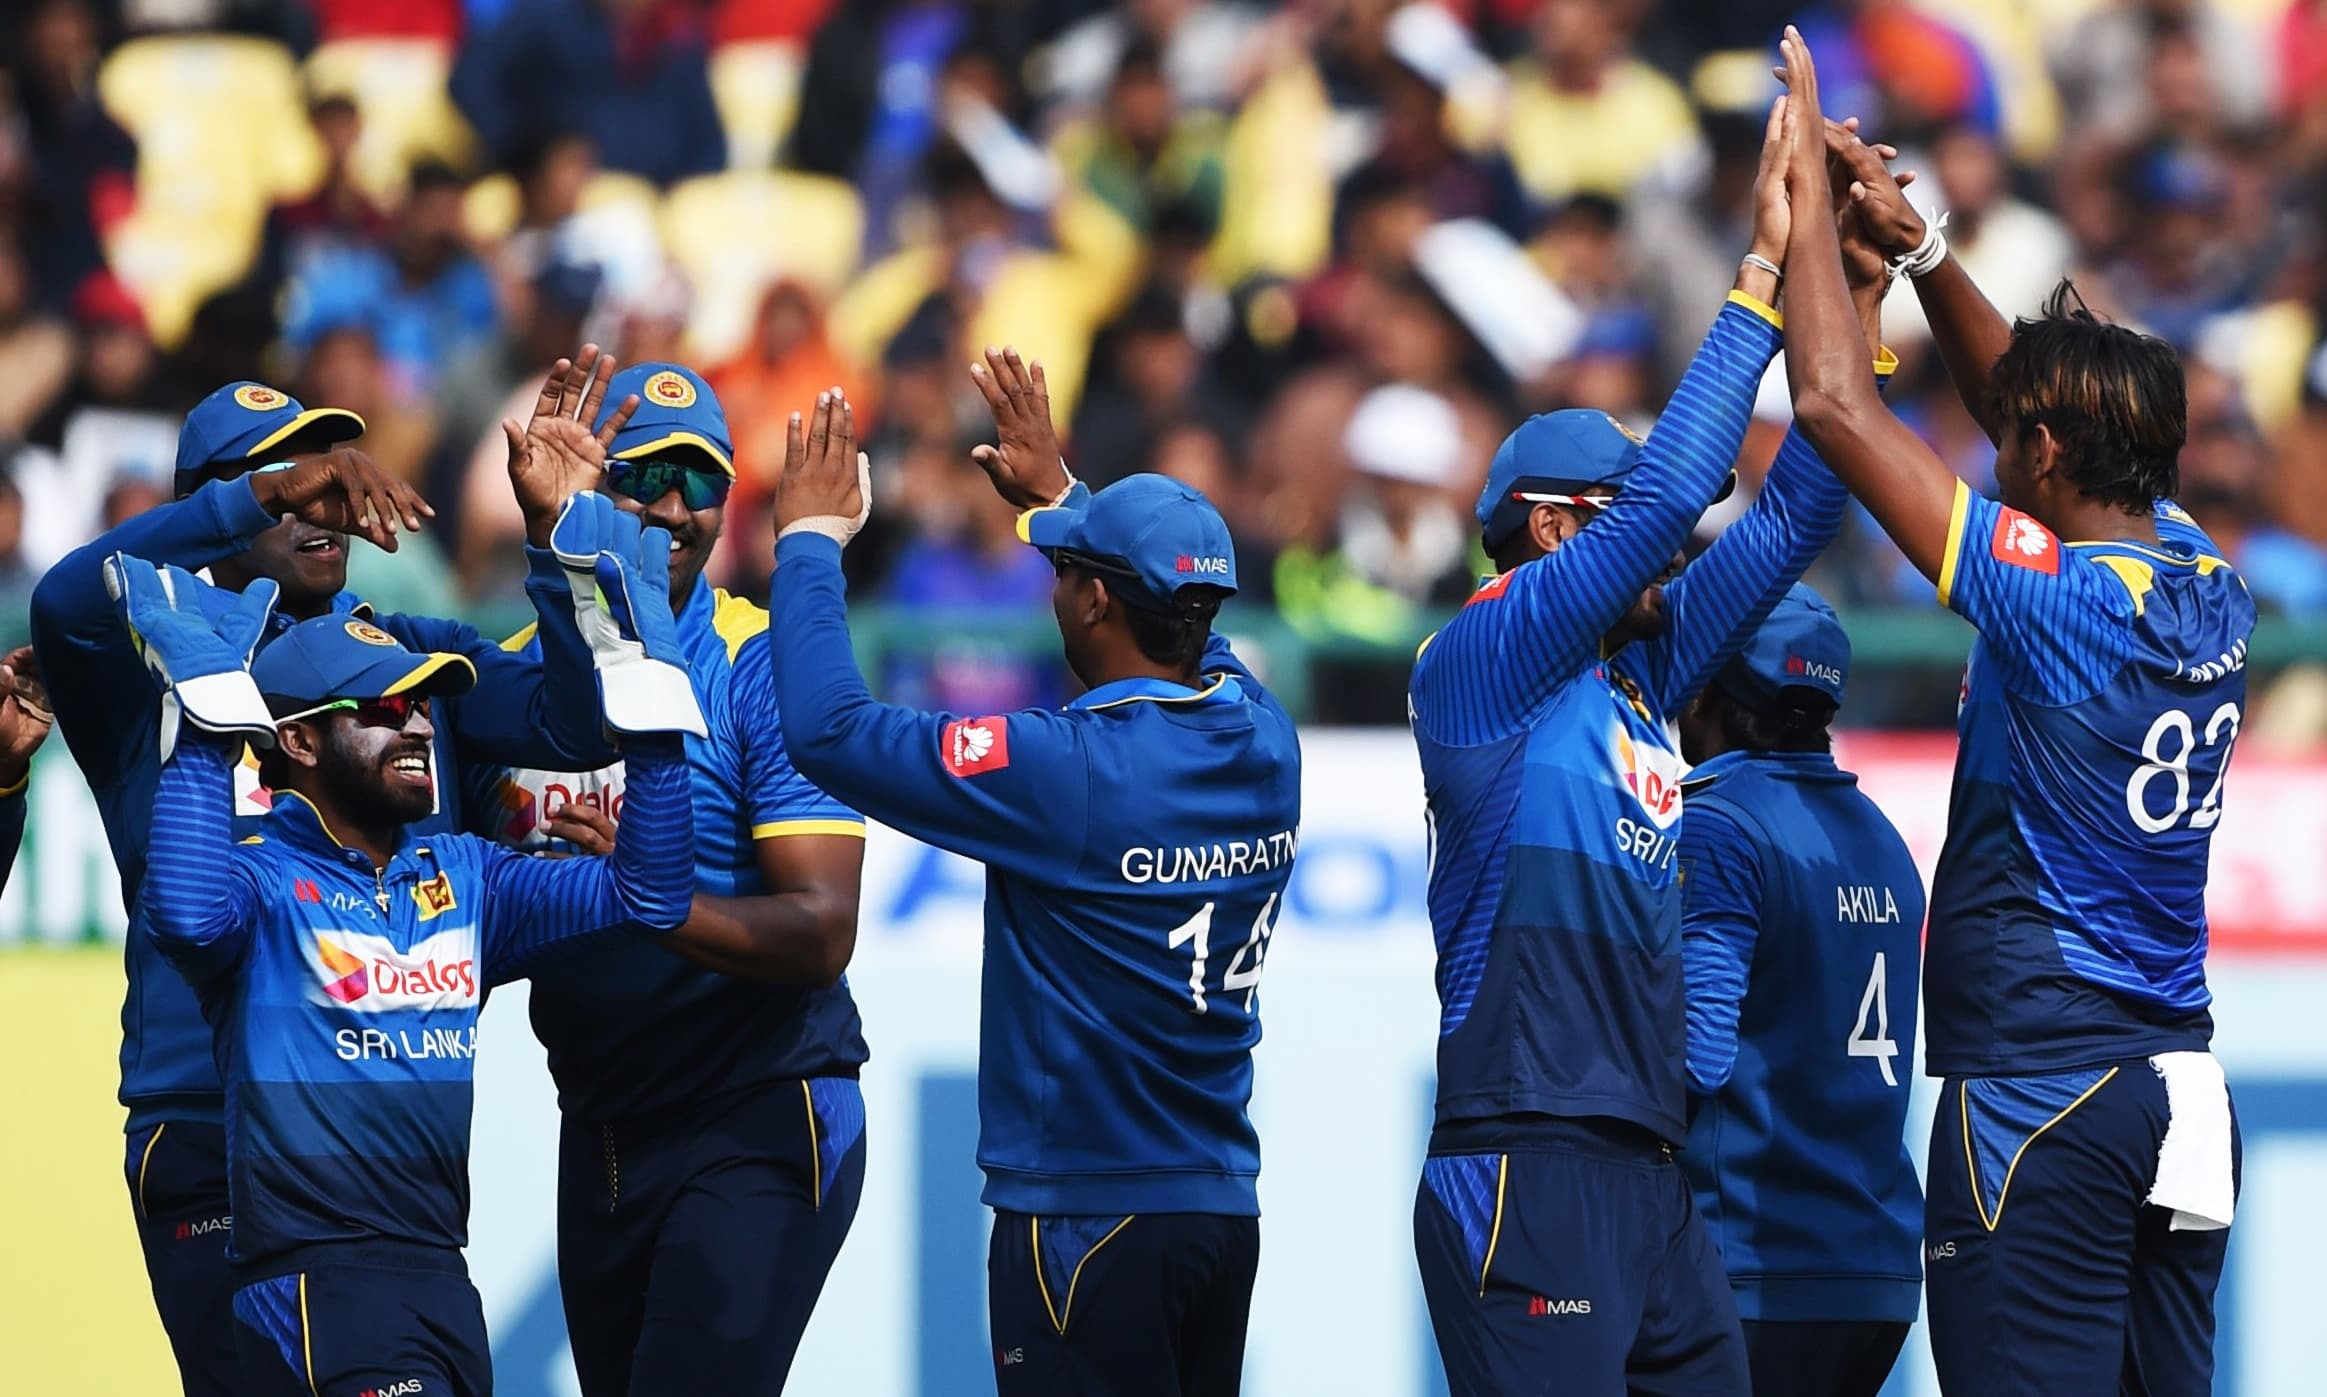 Australia outclass Sri Lanka to go top of Cricket World Cup